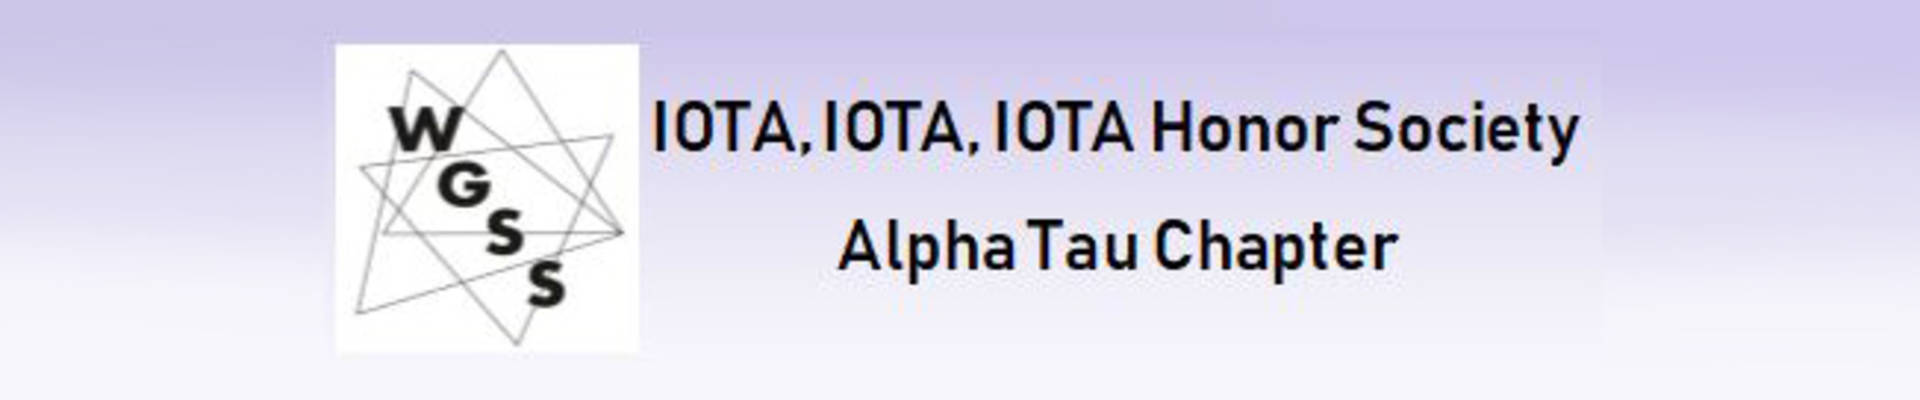 IOTA Honor Society Alpha Tau Chapter graphic logo